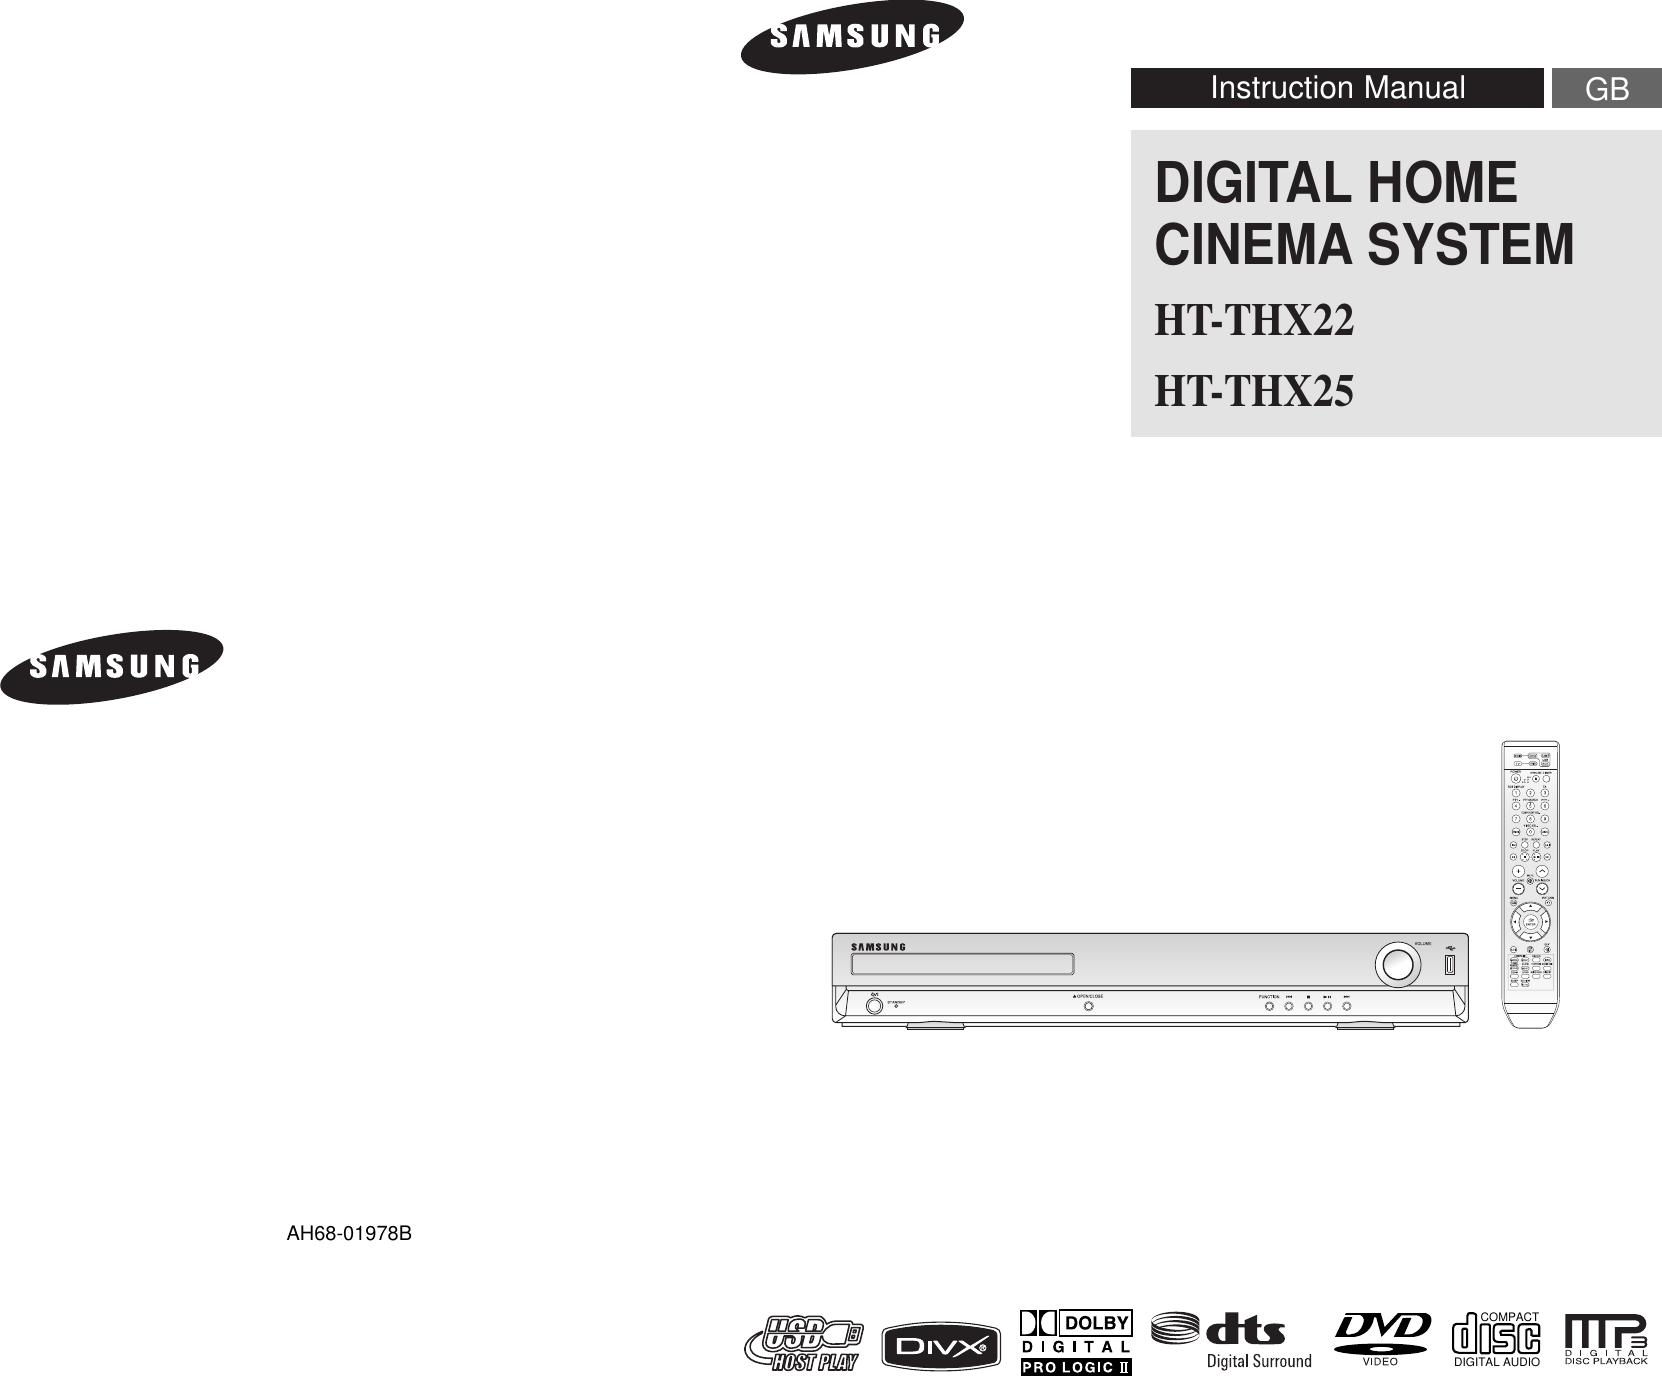 Samsung Htthx22 User Manual To The 77070a7c 70cb 4ff4 Bc4b